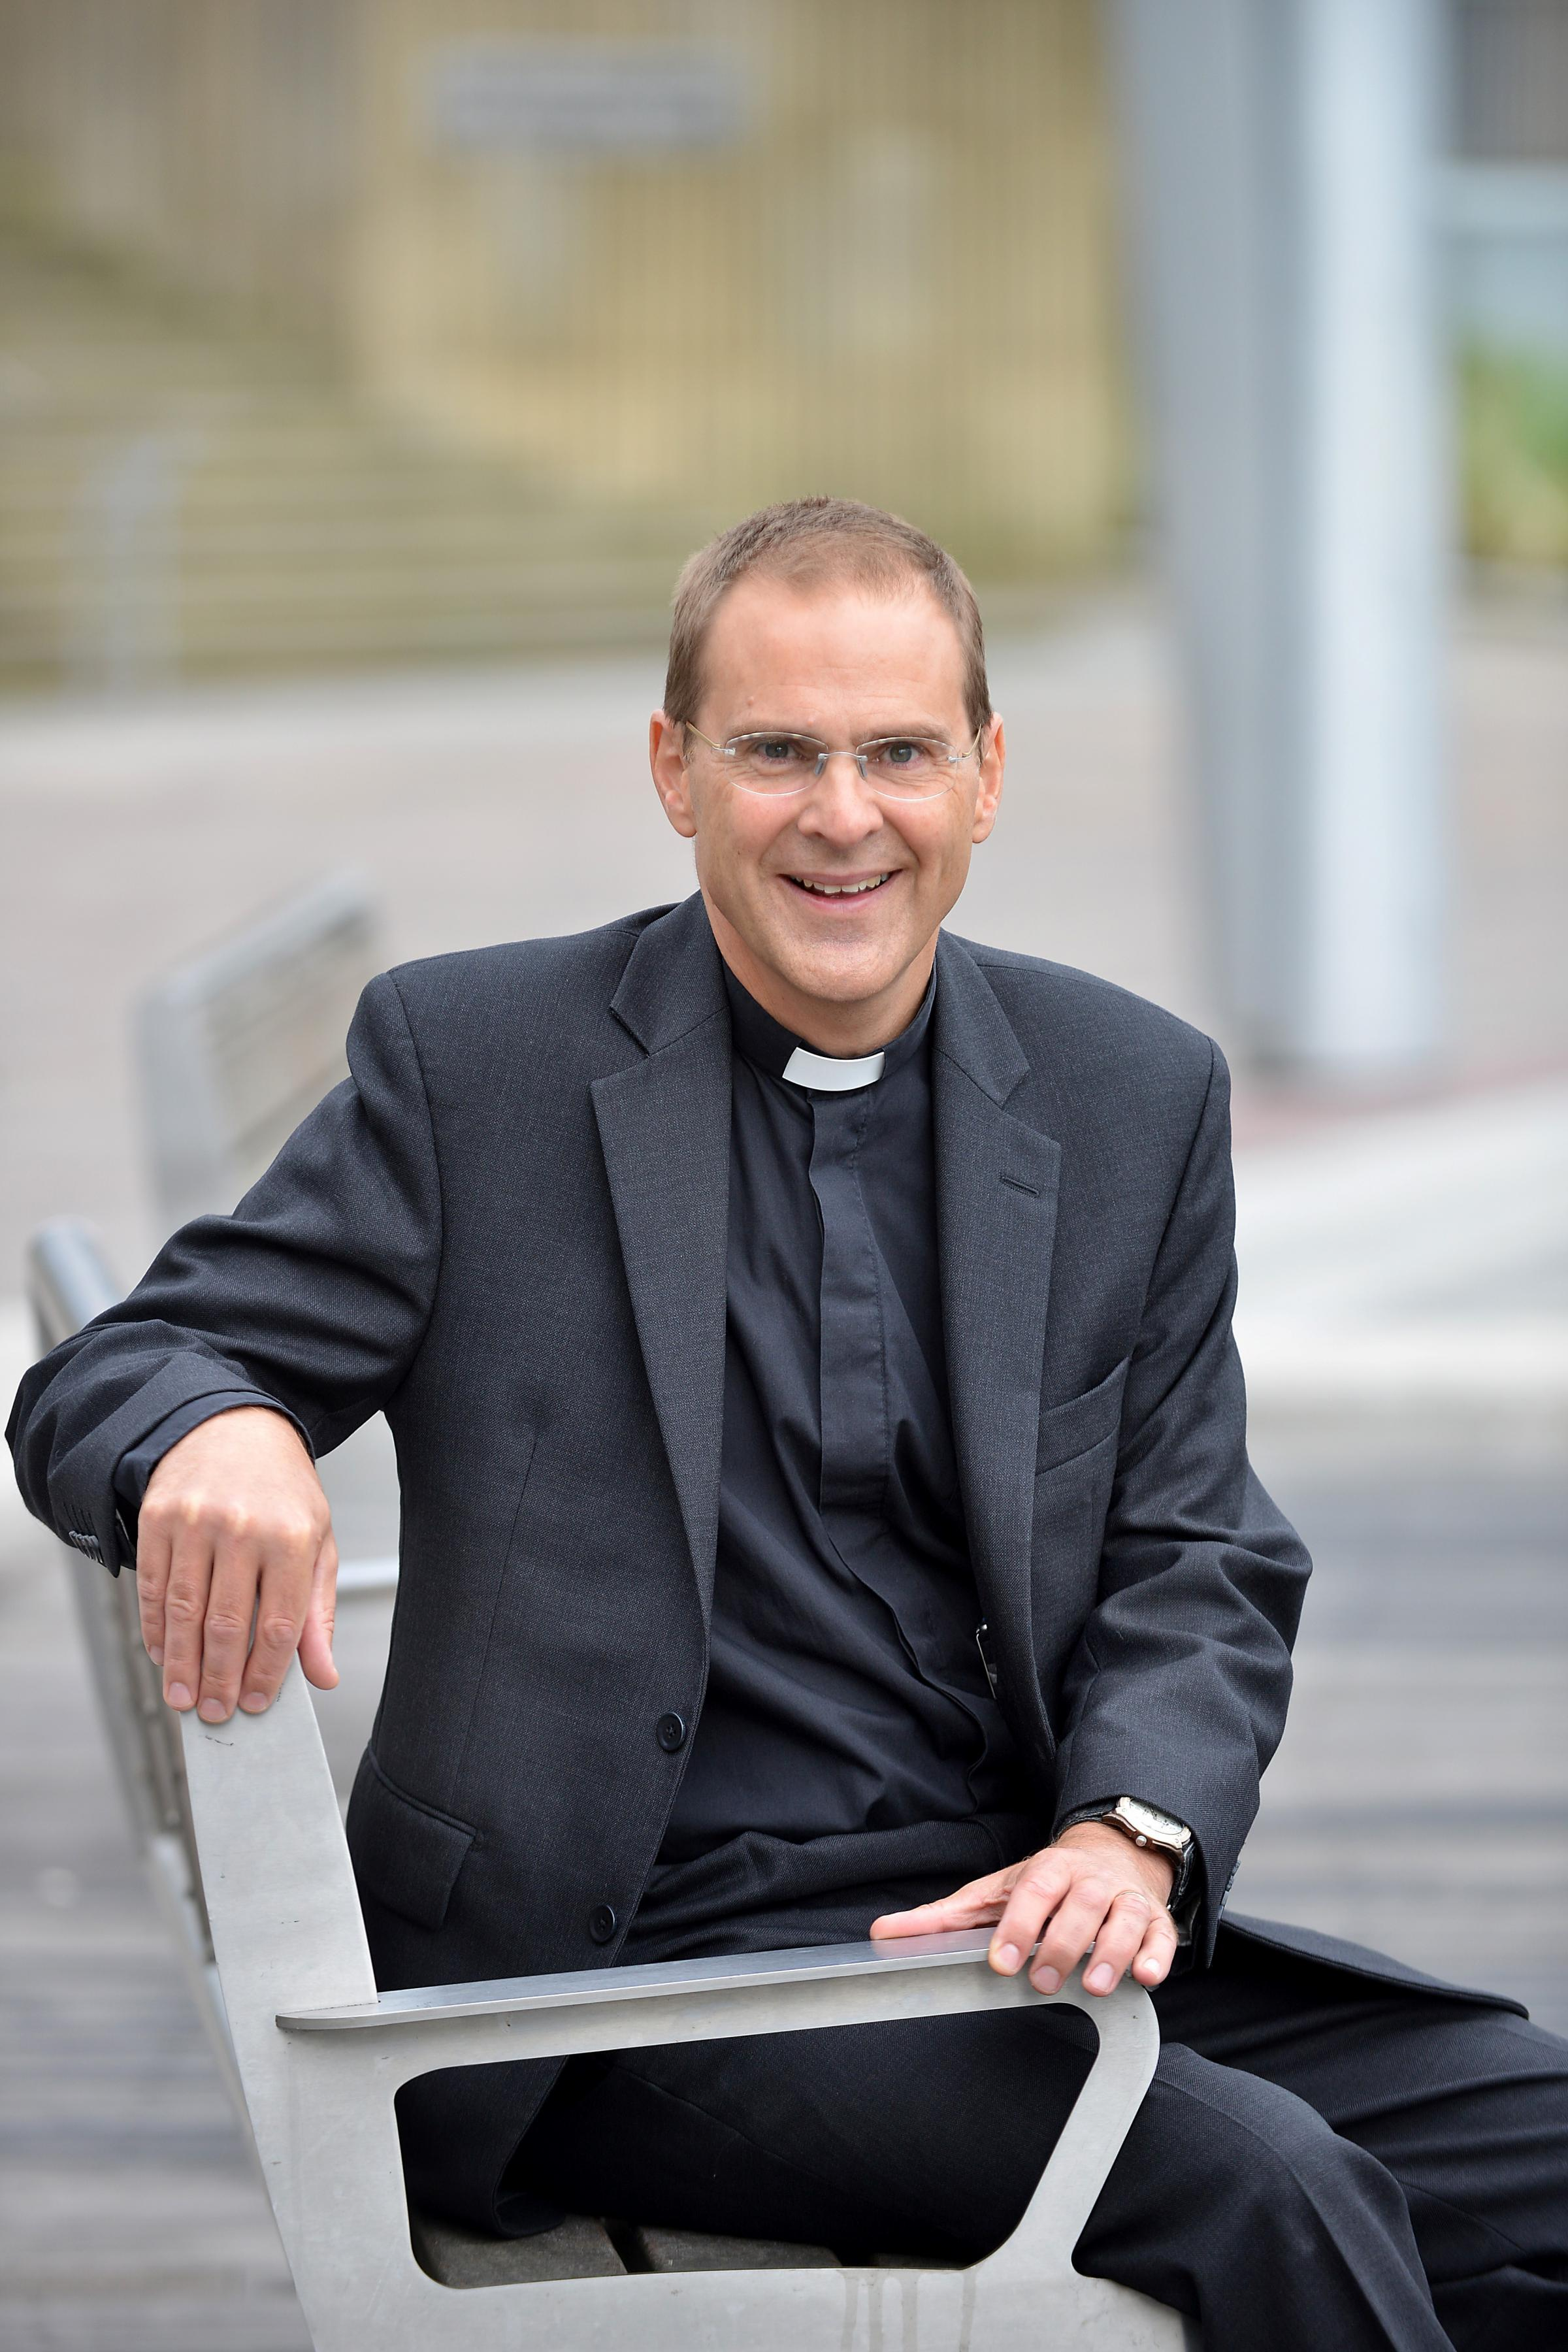 bishop muslim personals Church of sweden bishop fredrik modeus has announced his support for muslims in the city of växjö being able to publicly broadcast a call to prayer saying he looked forward to hearing it along with church bells.